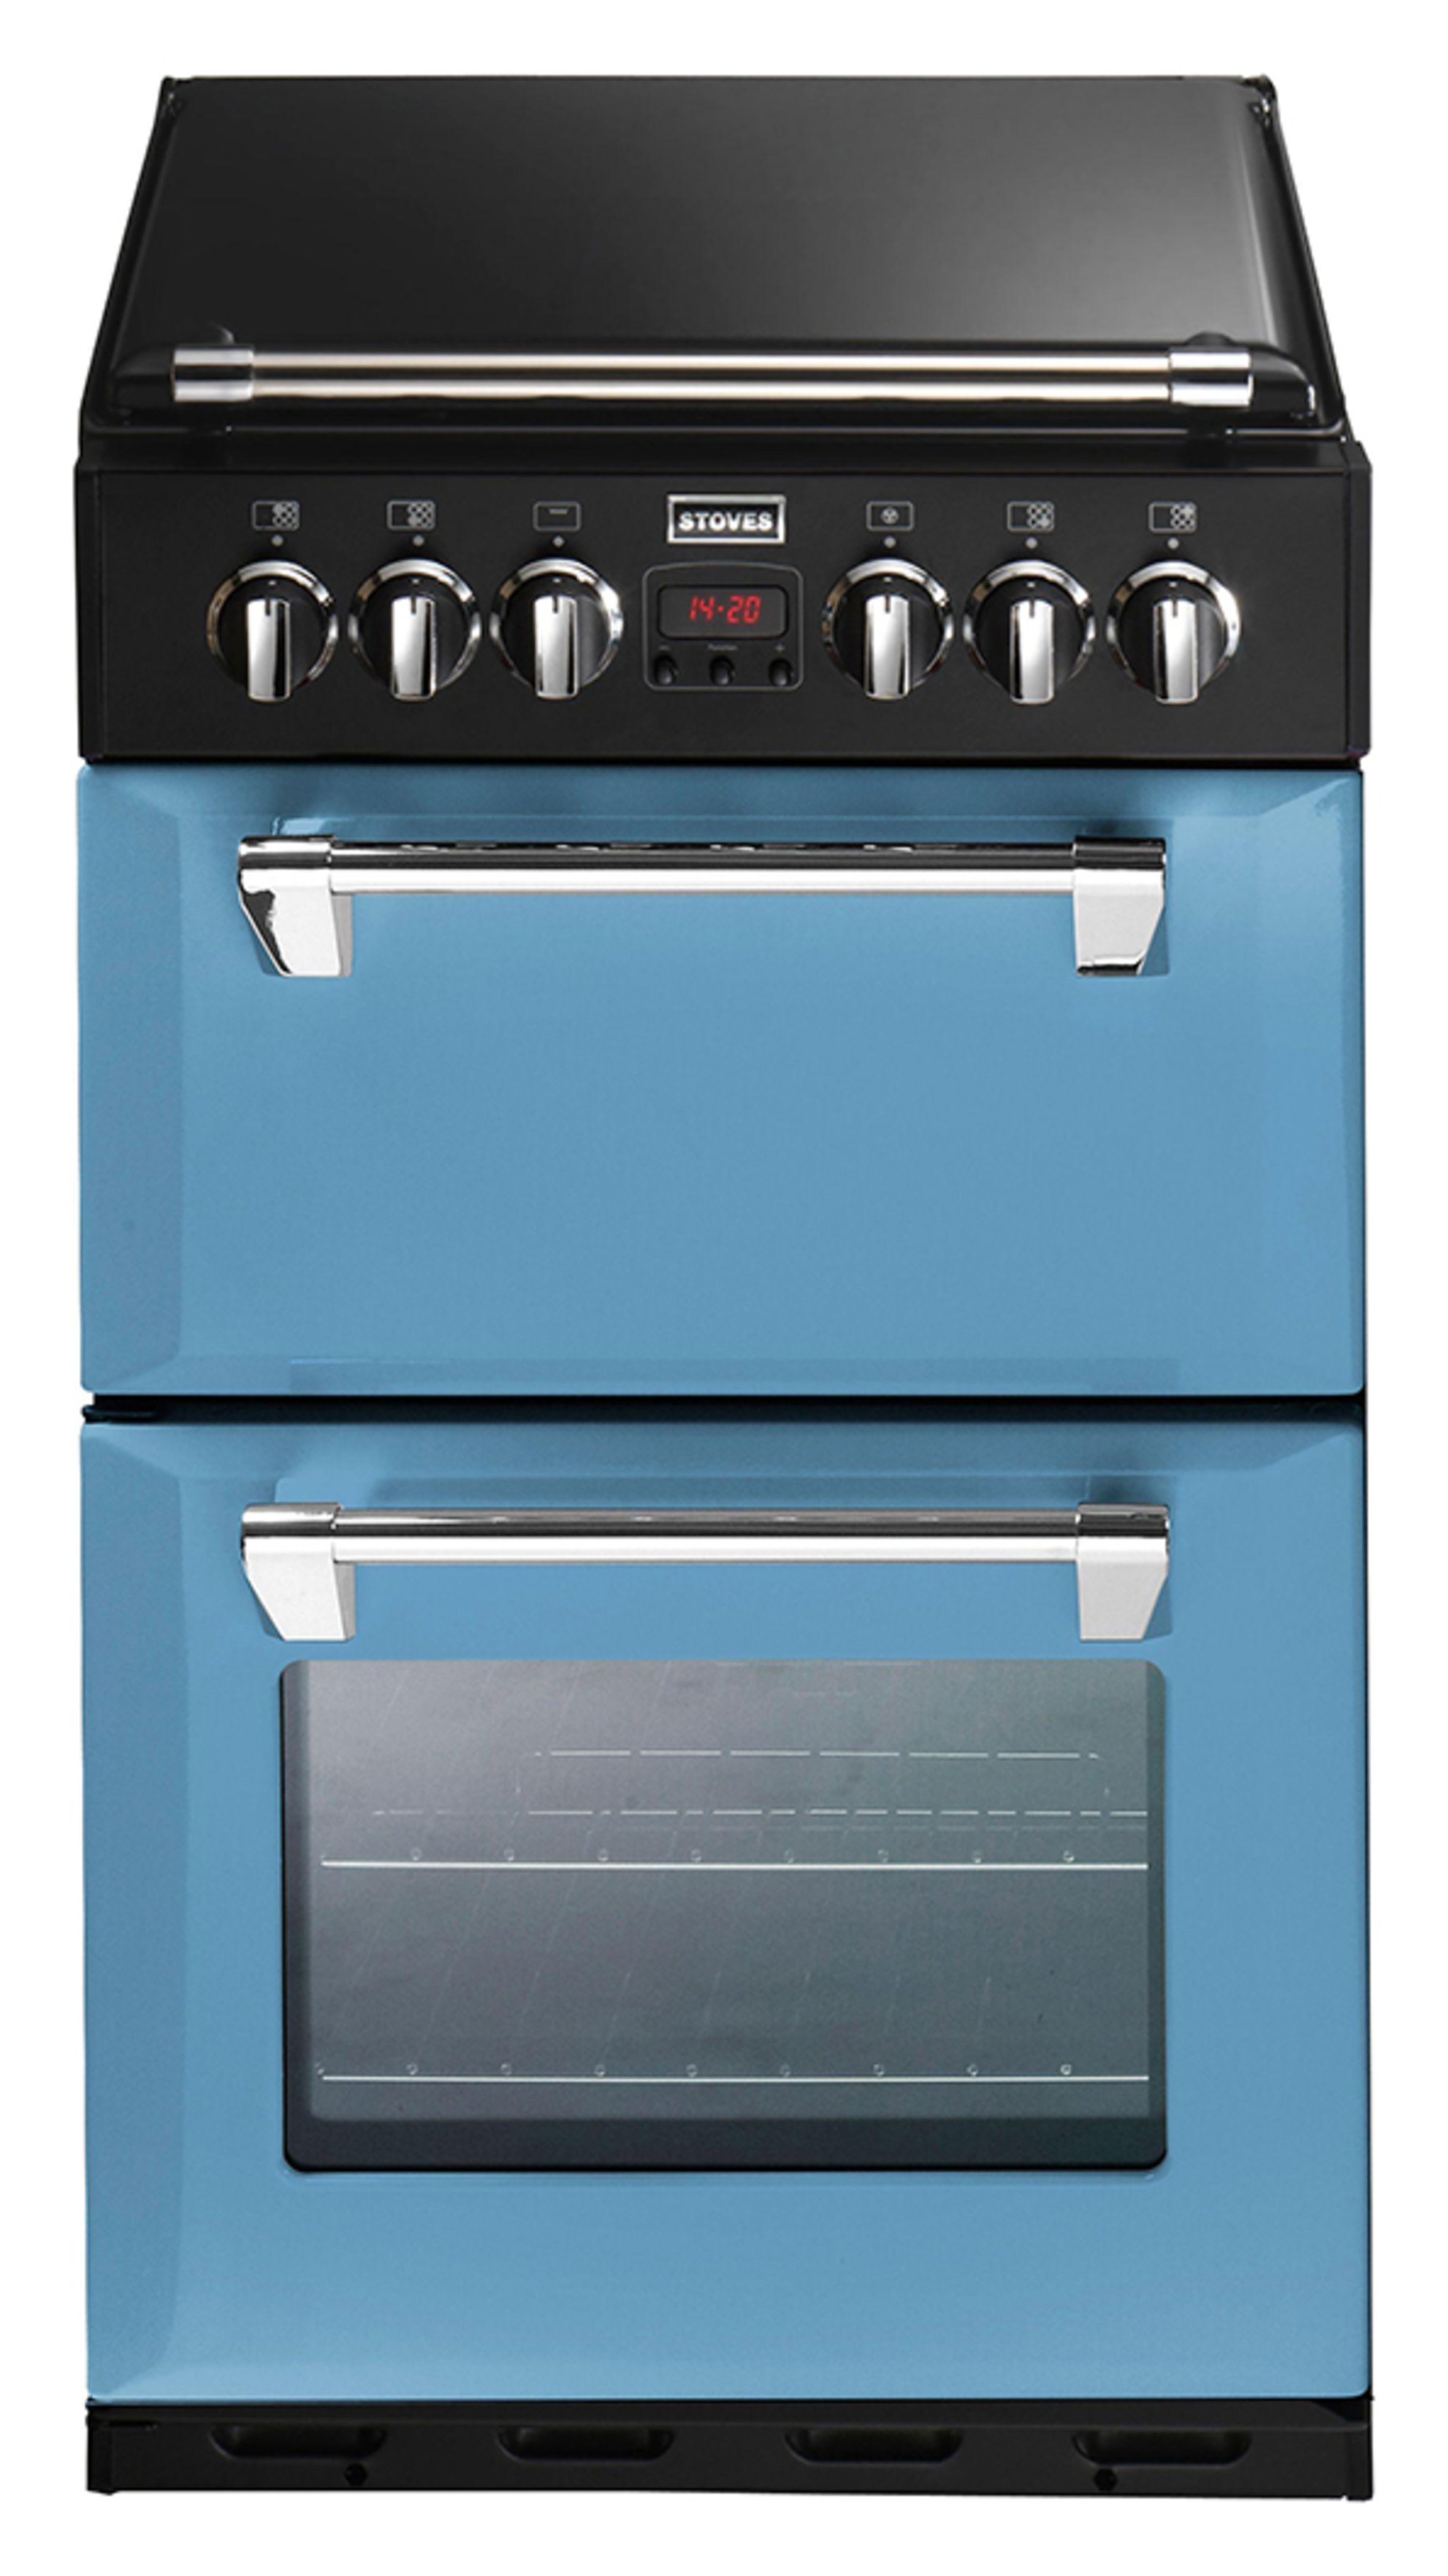 Stoves Richmond 550DFW Double Dual Fuel Cooker - Daybreak